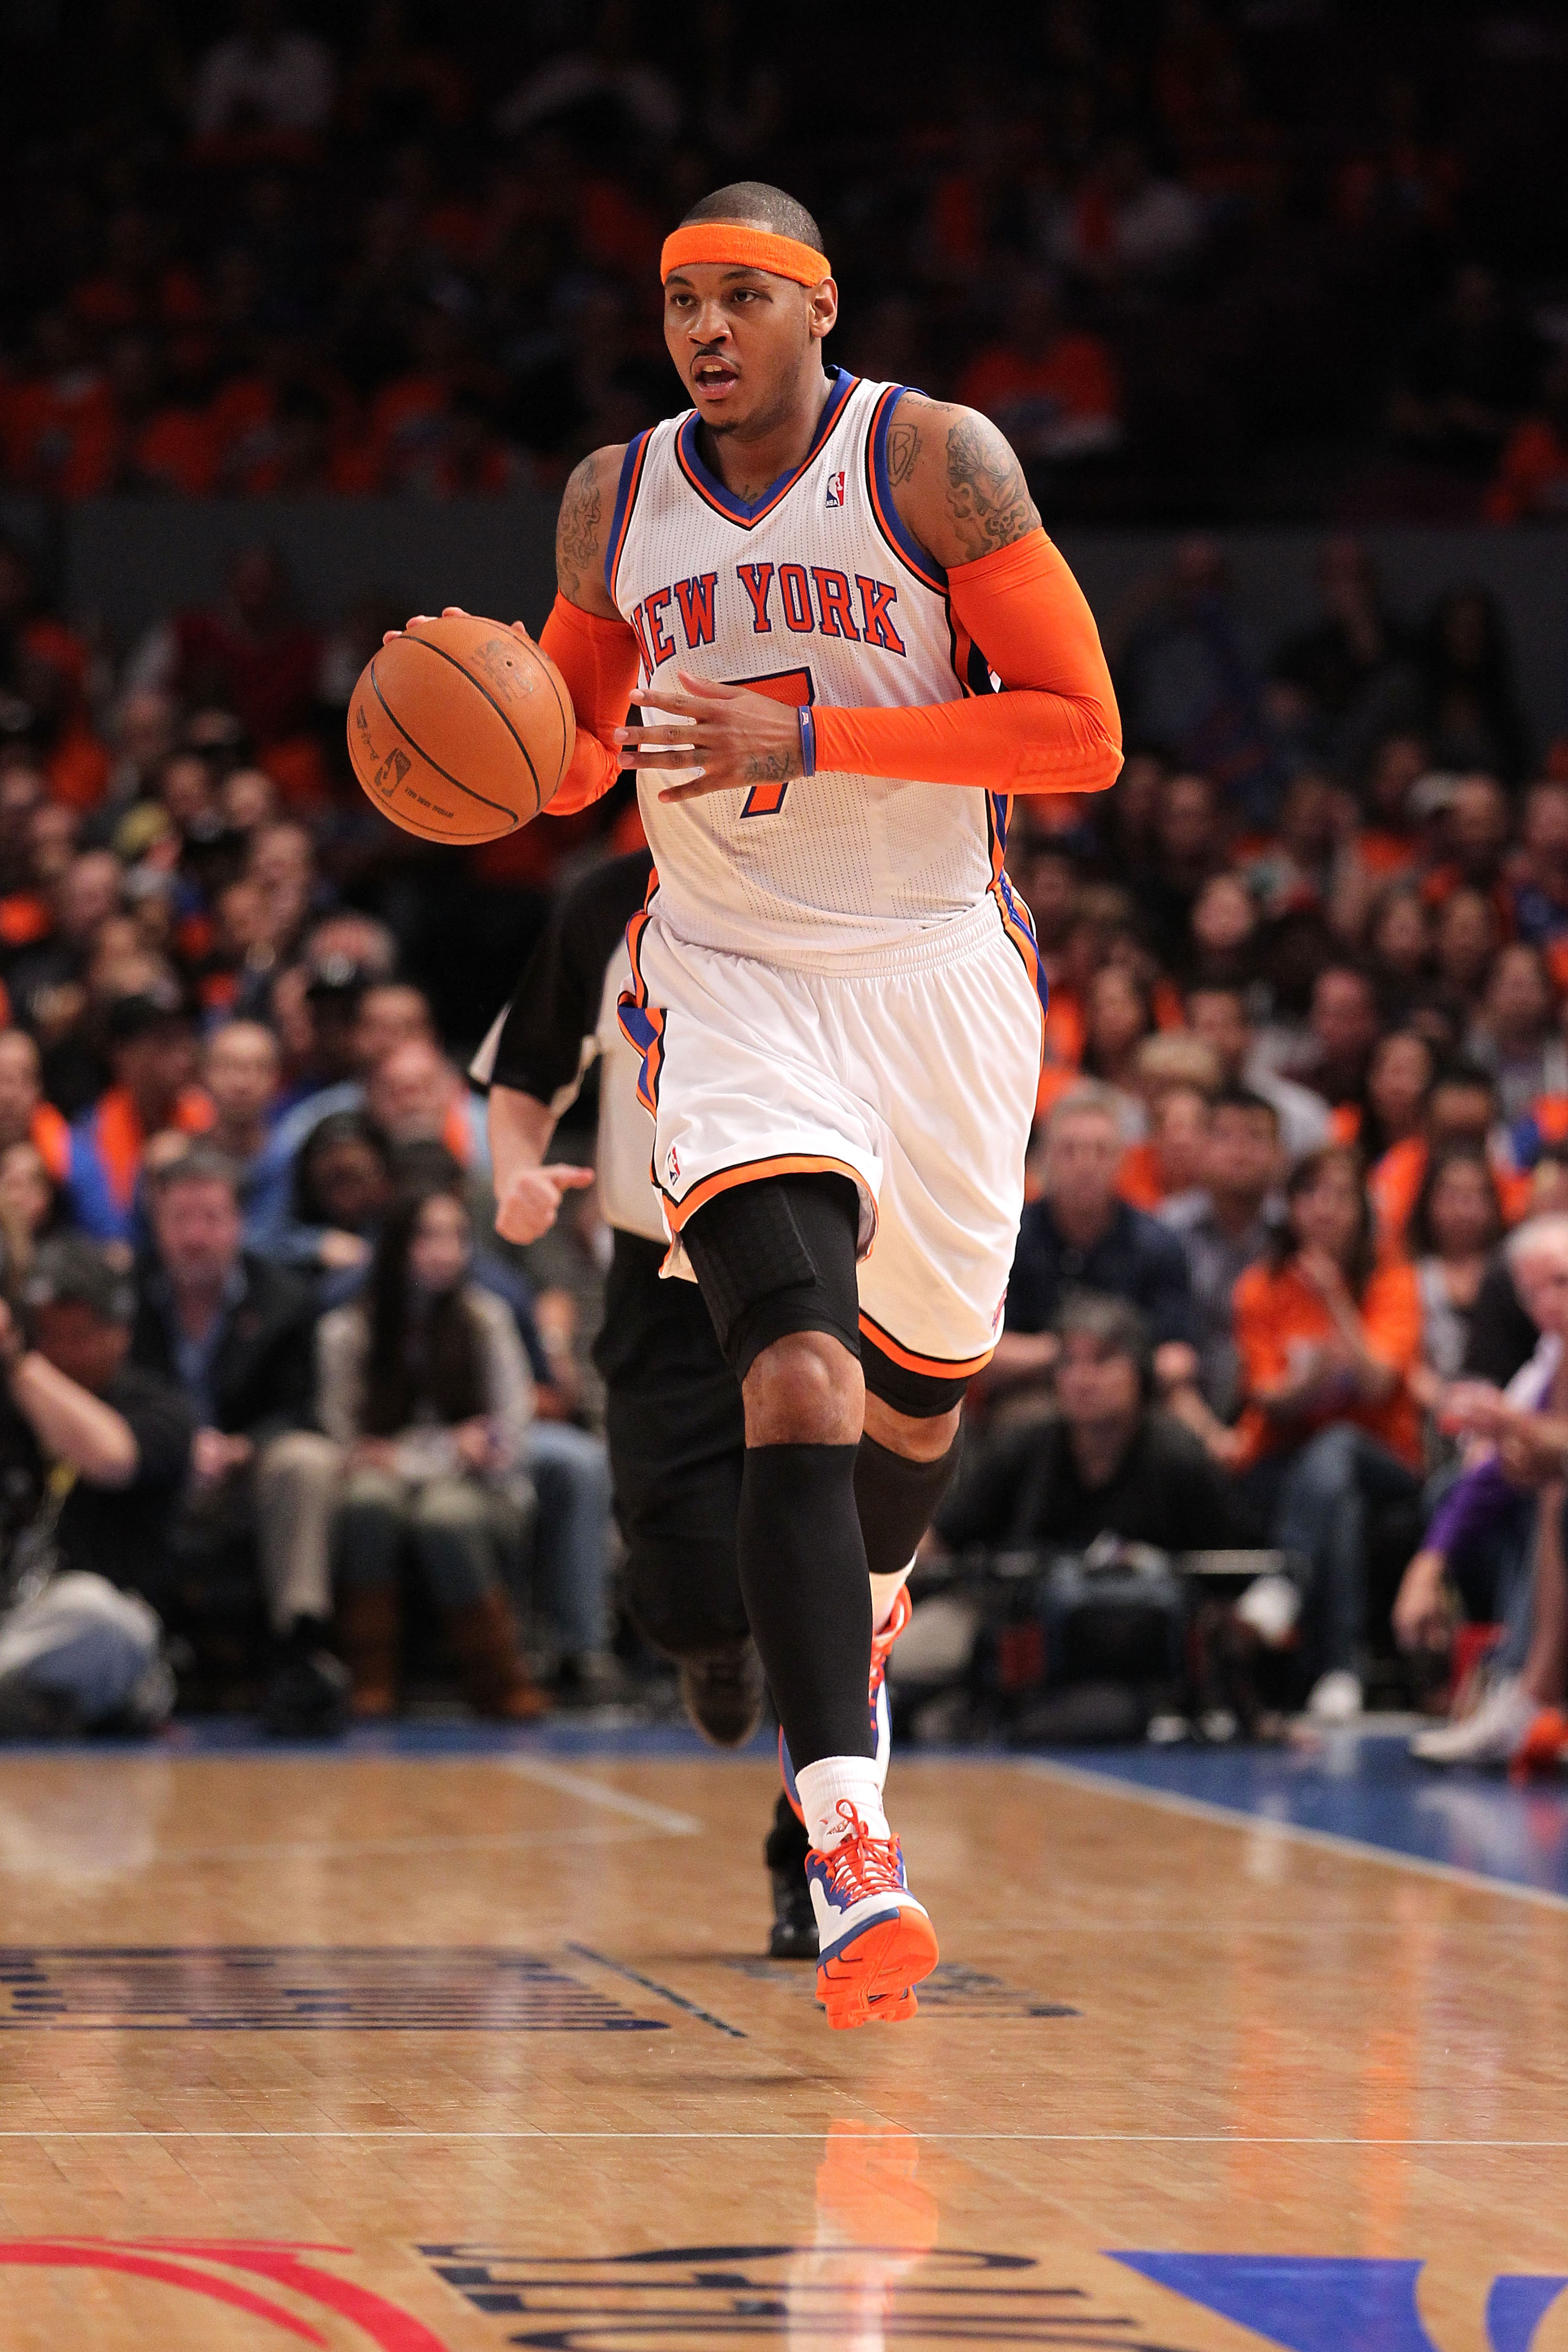 NEW YORK, NY - APRIL 24:  Carmelo Anthony #7 of the New York Knicks brings the ball up court agaist the Boston Celtics in Game Four of the Eastern Conference Quarterfinals during the 2011 NBA Playoffs on April 24, 2011 at Madison Square Garden in New York